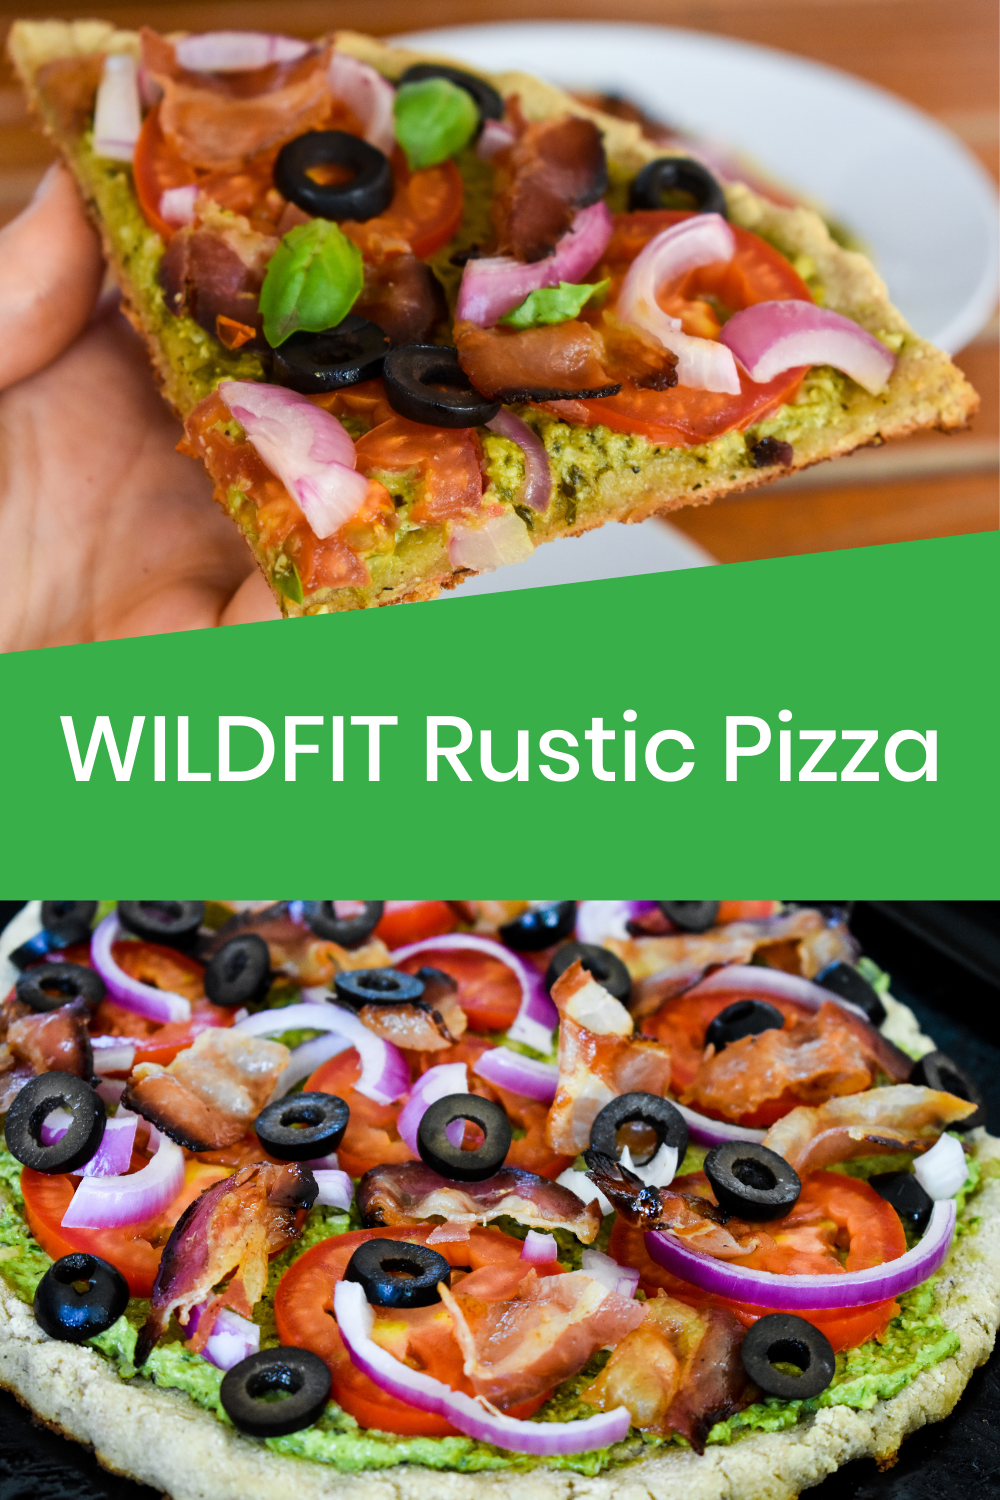 Rustic Pizza Recipe Healthy Pizza Toppings Delicious Pizza Recipes Rustic Pizza